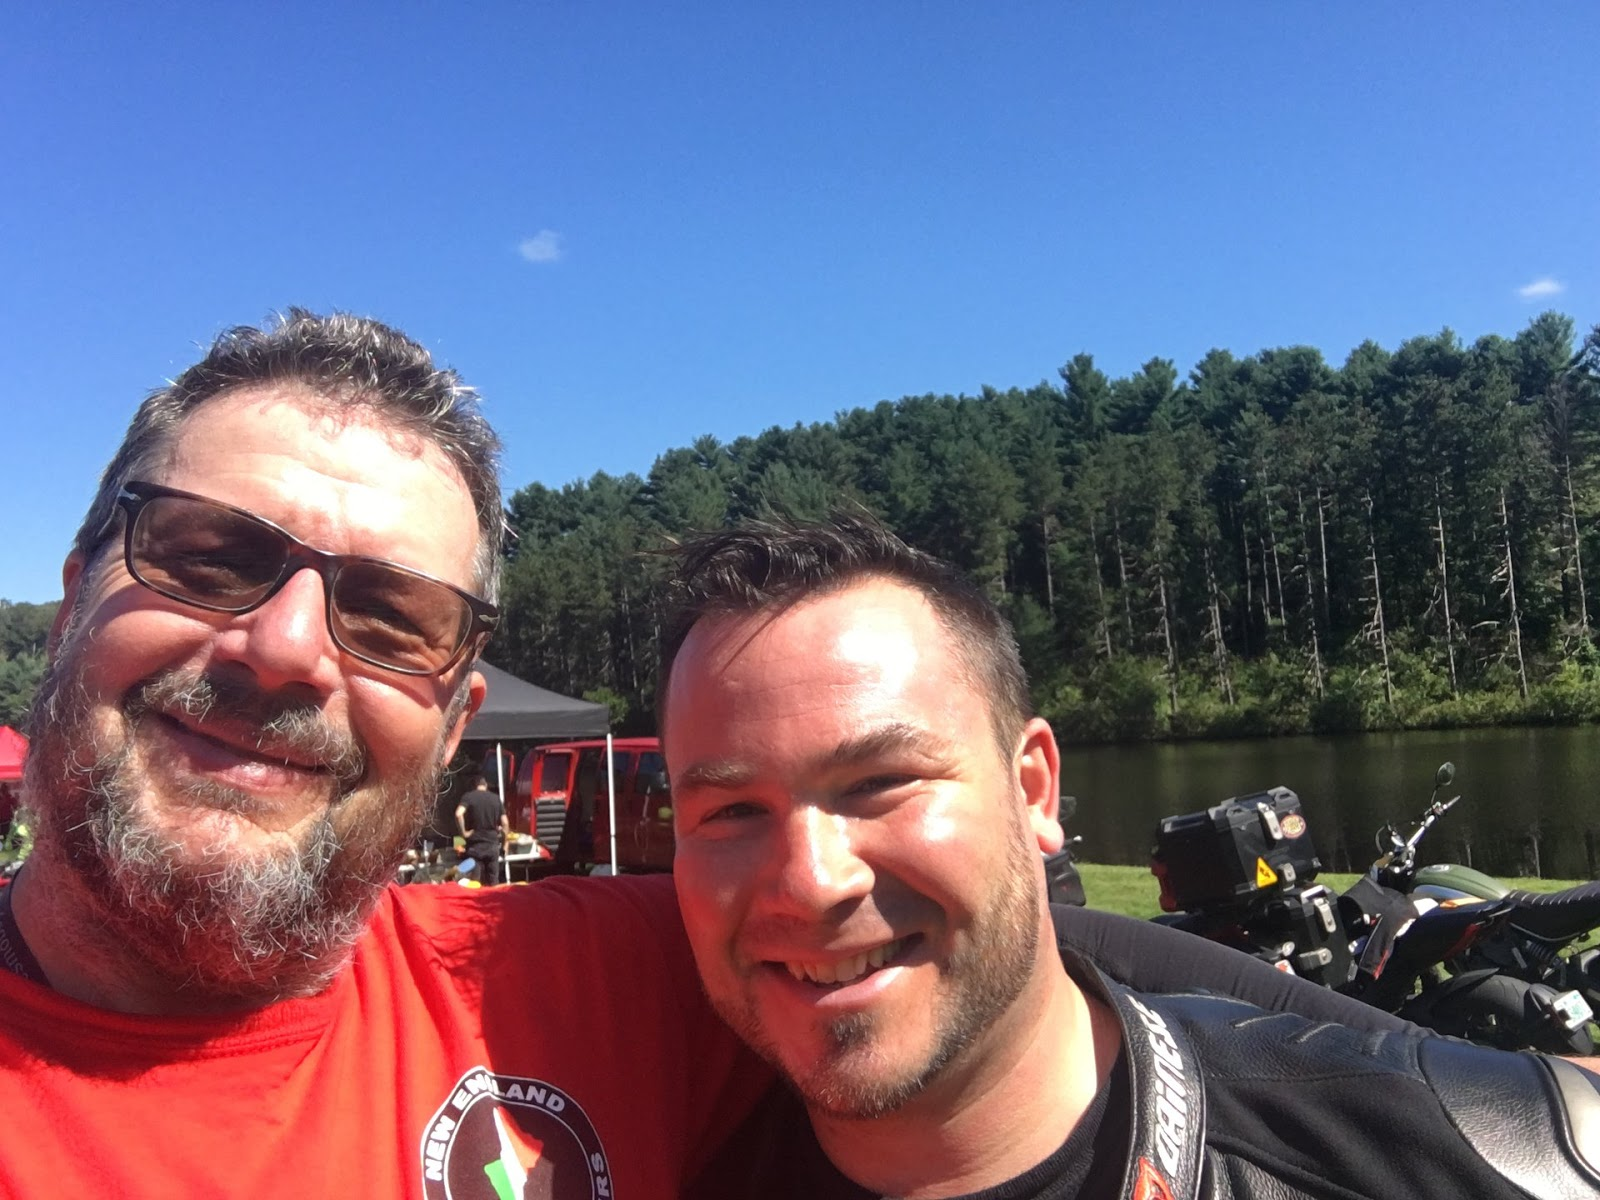 Presidents Ted Gooch of NEDOC New England Desmo Owners Club and Tigh Loughhead of Gotham Ducati